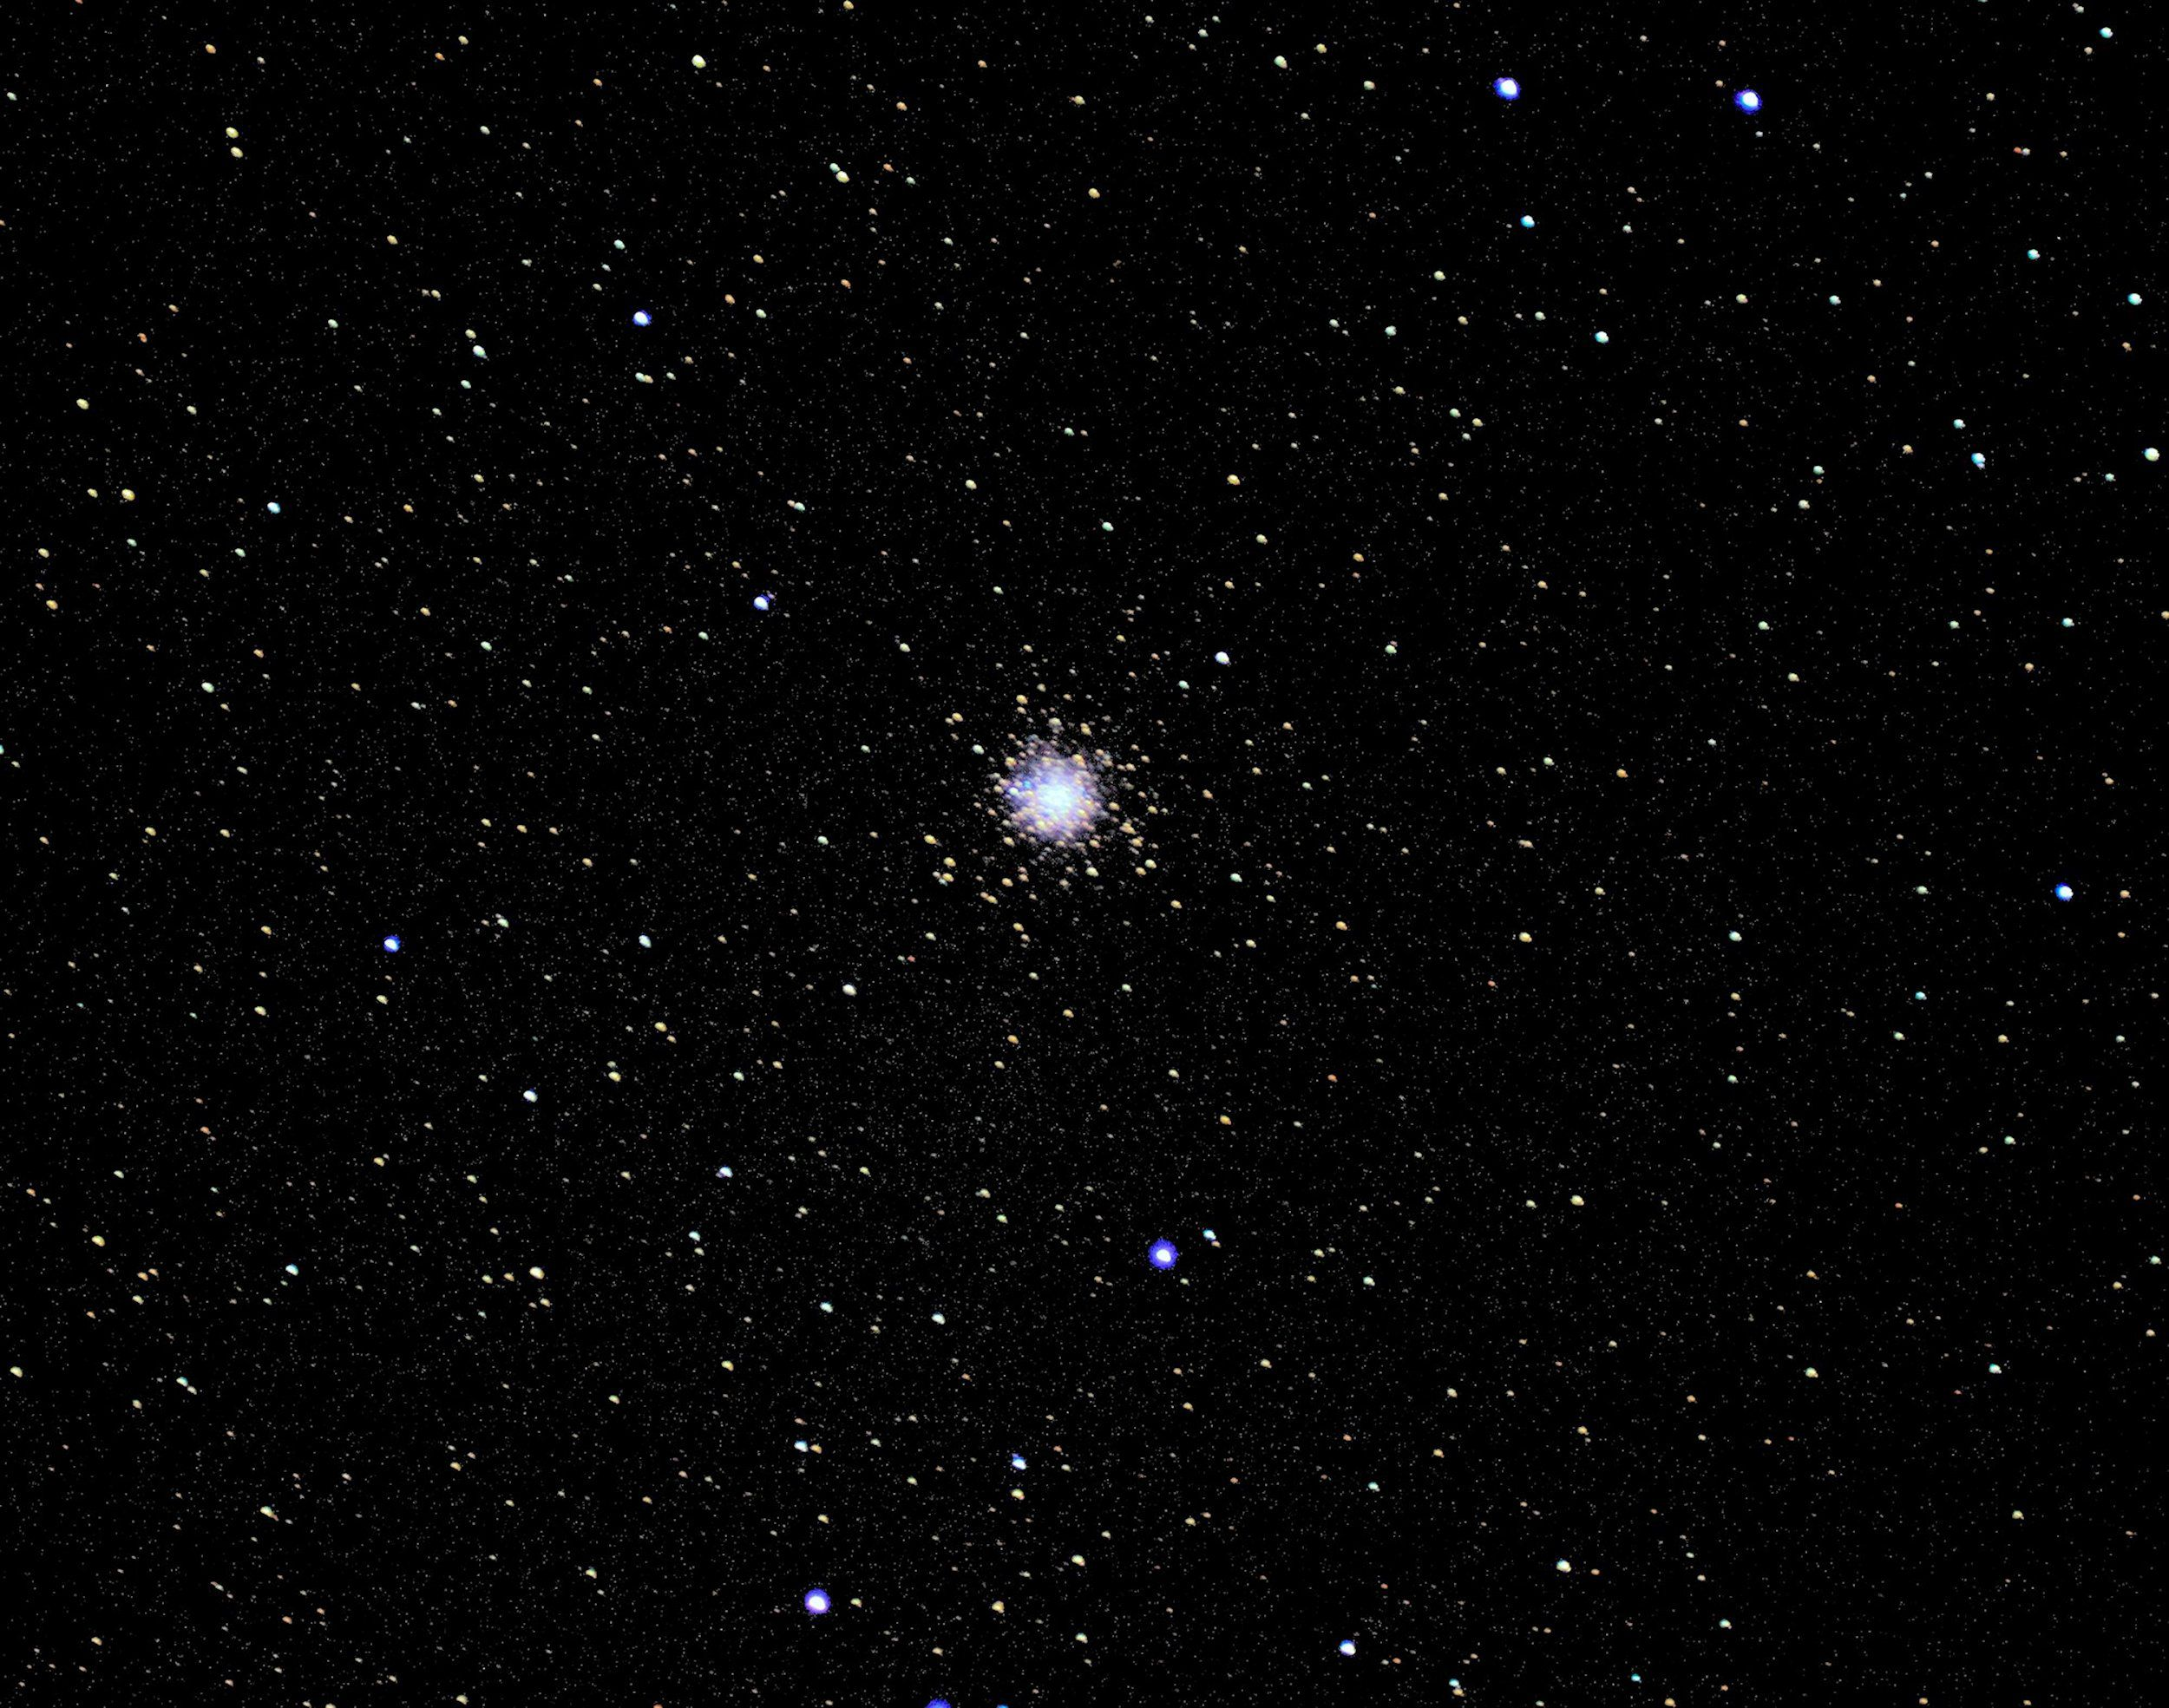 orion star cluster - photo #42